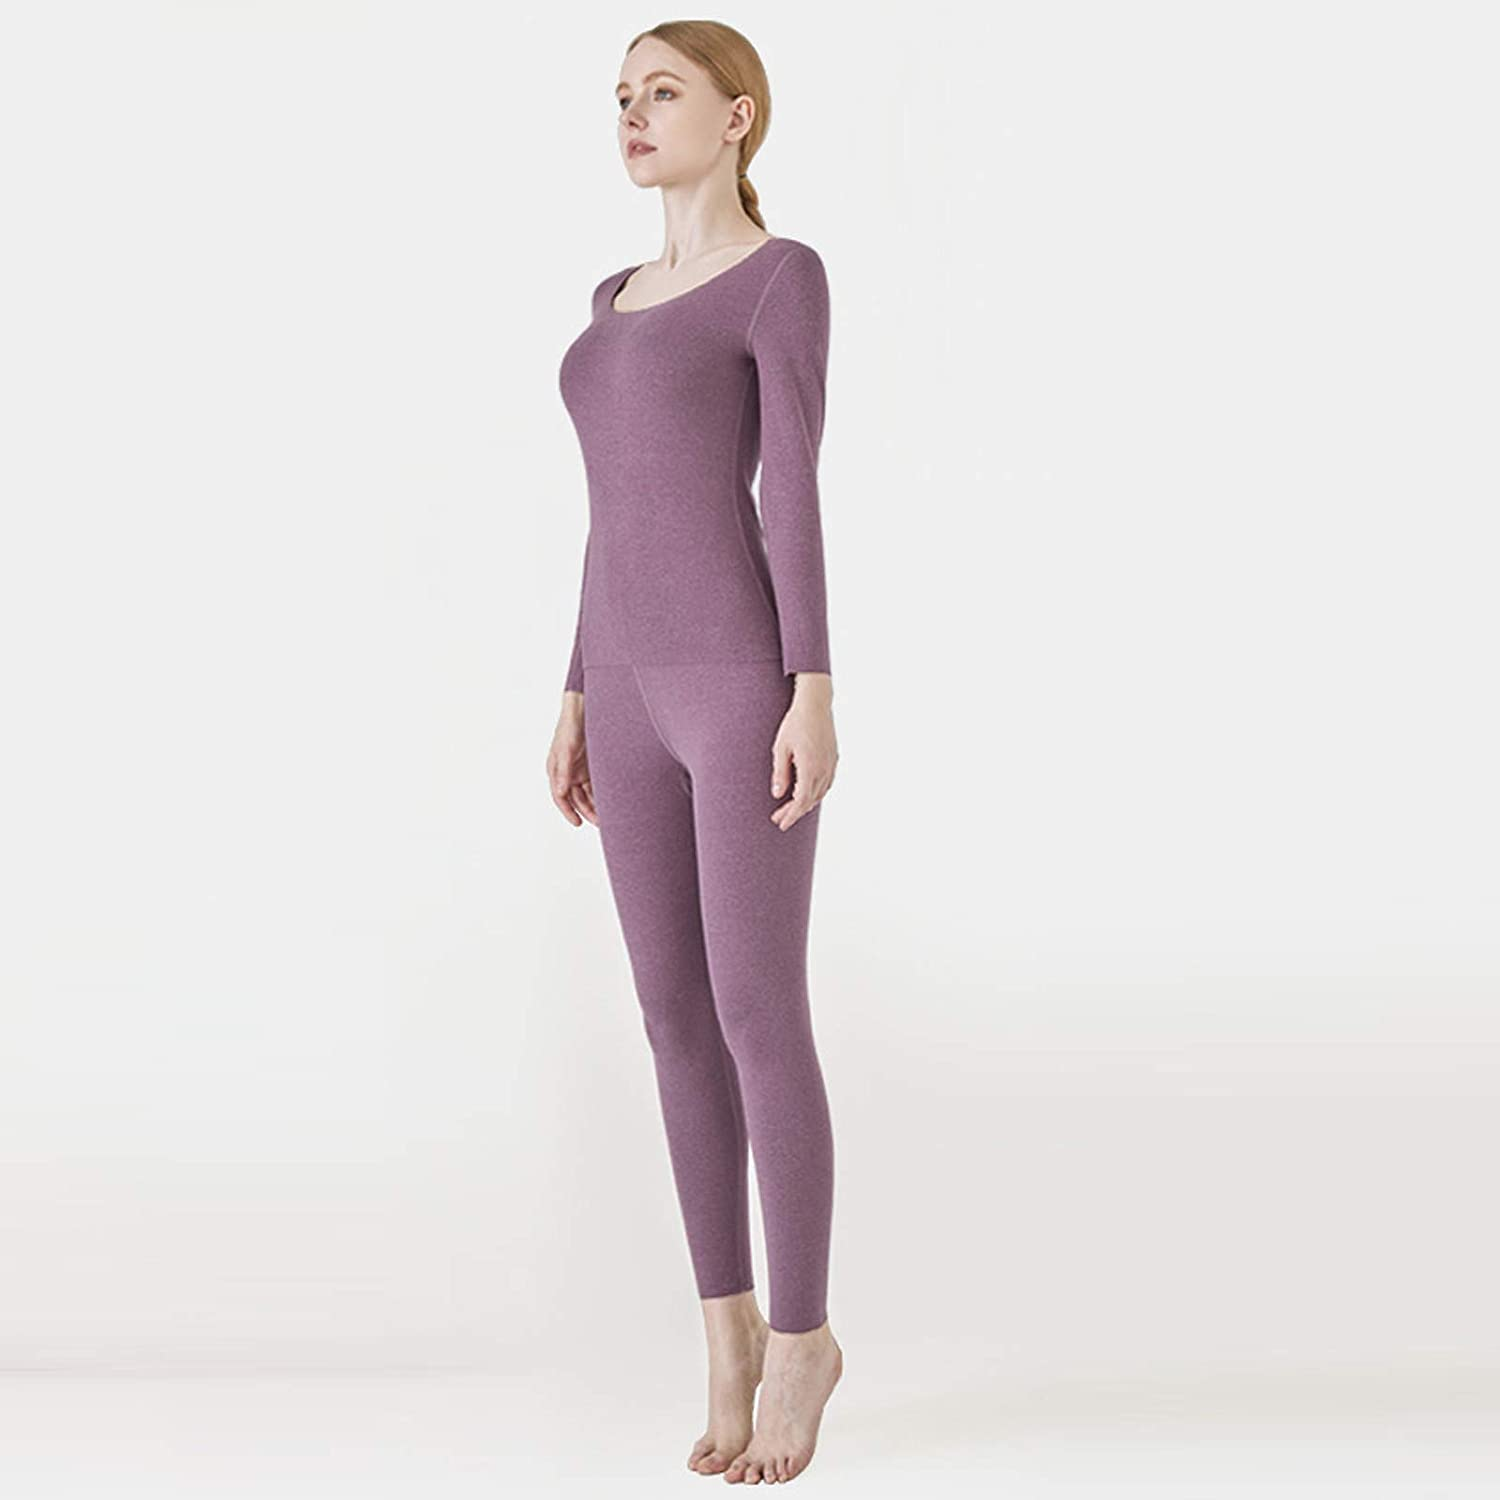 Women's Solid Color Long Sleeve Cationic Heating Plush Thermal Underwear Set Dress,Silk/Pajamas Suit,Tracksuit